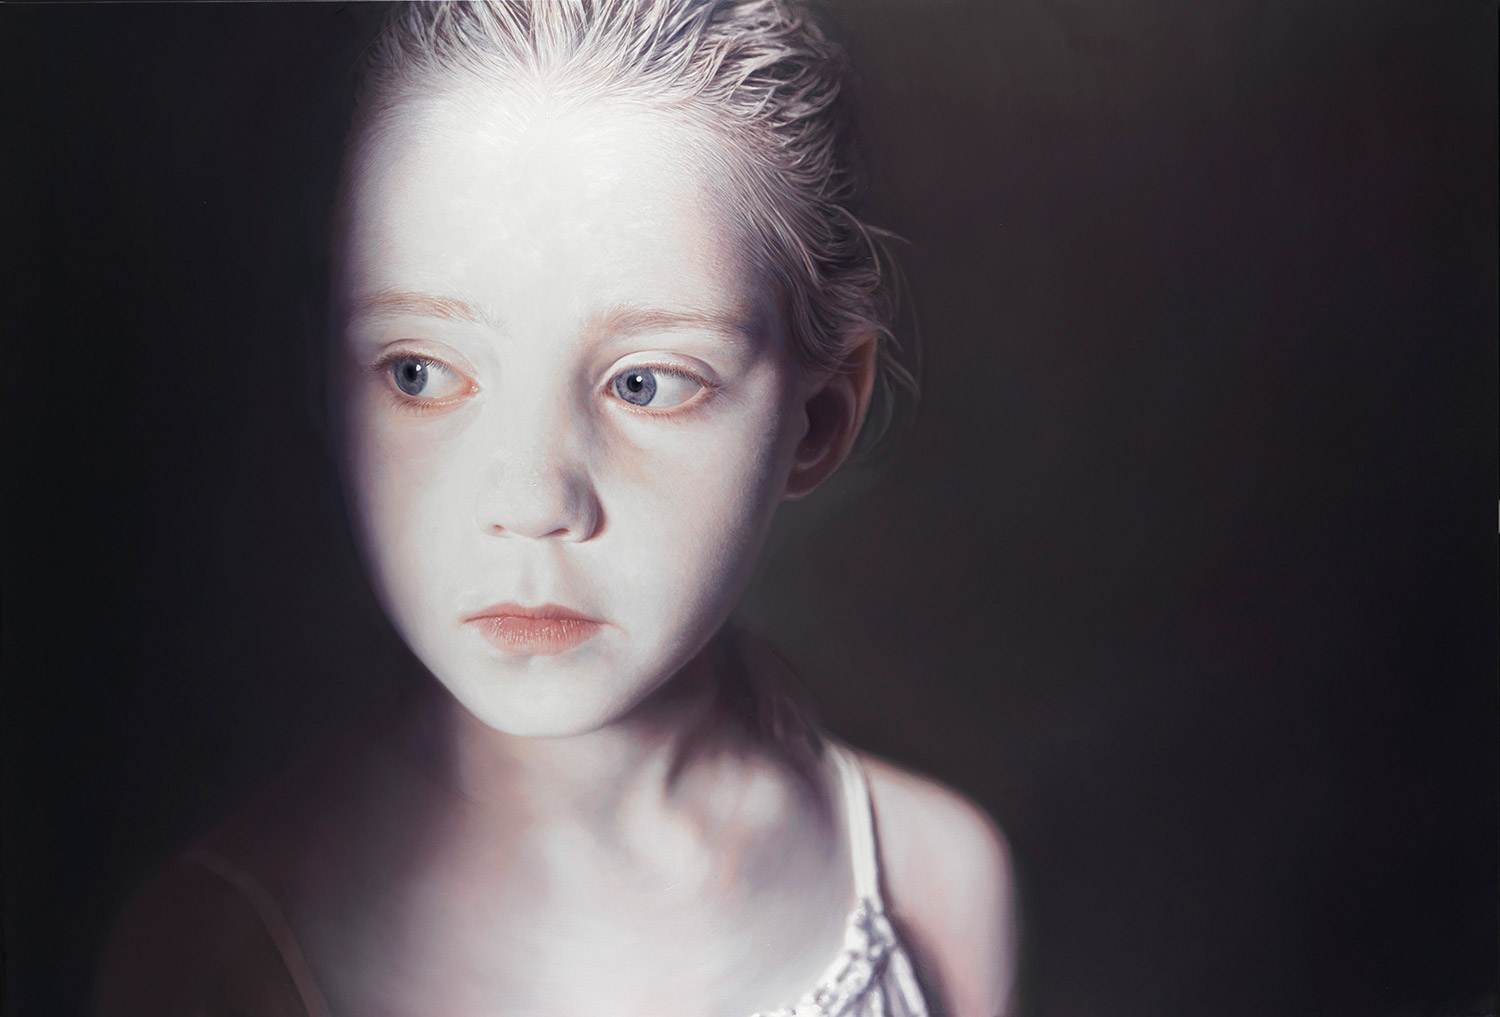 Gottfried Helnwein - The Murmur of the Innocents 1